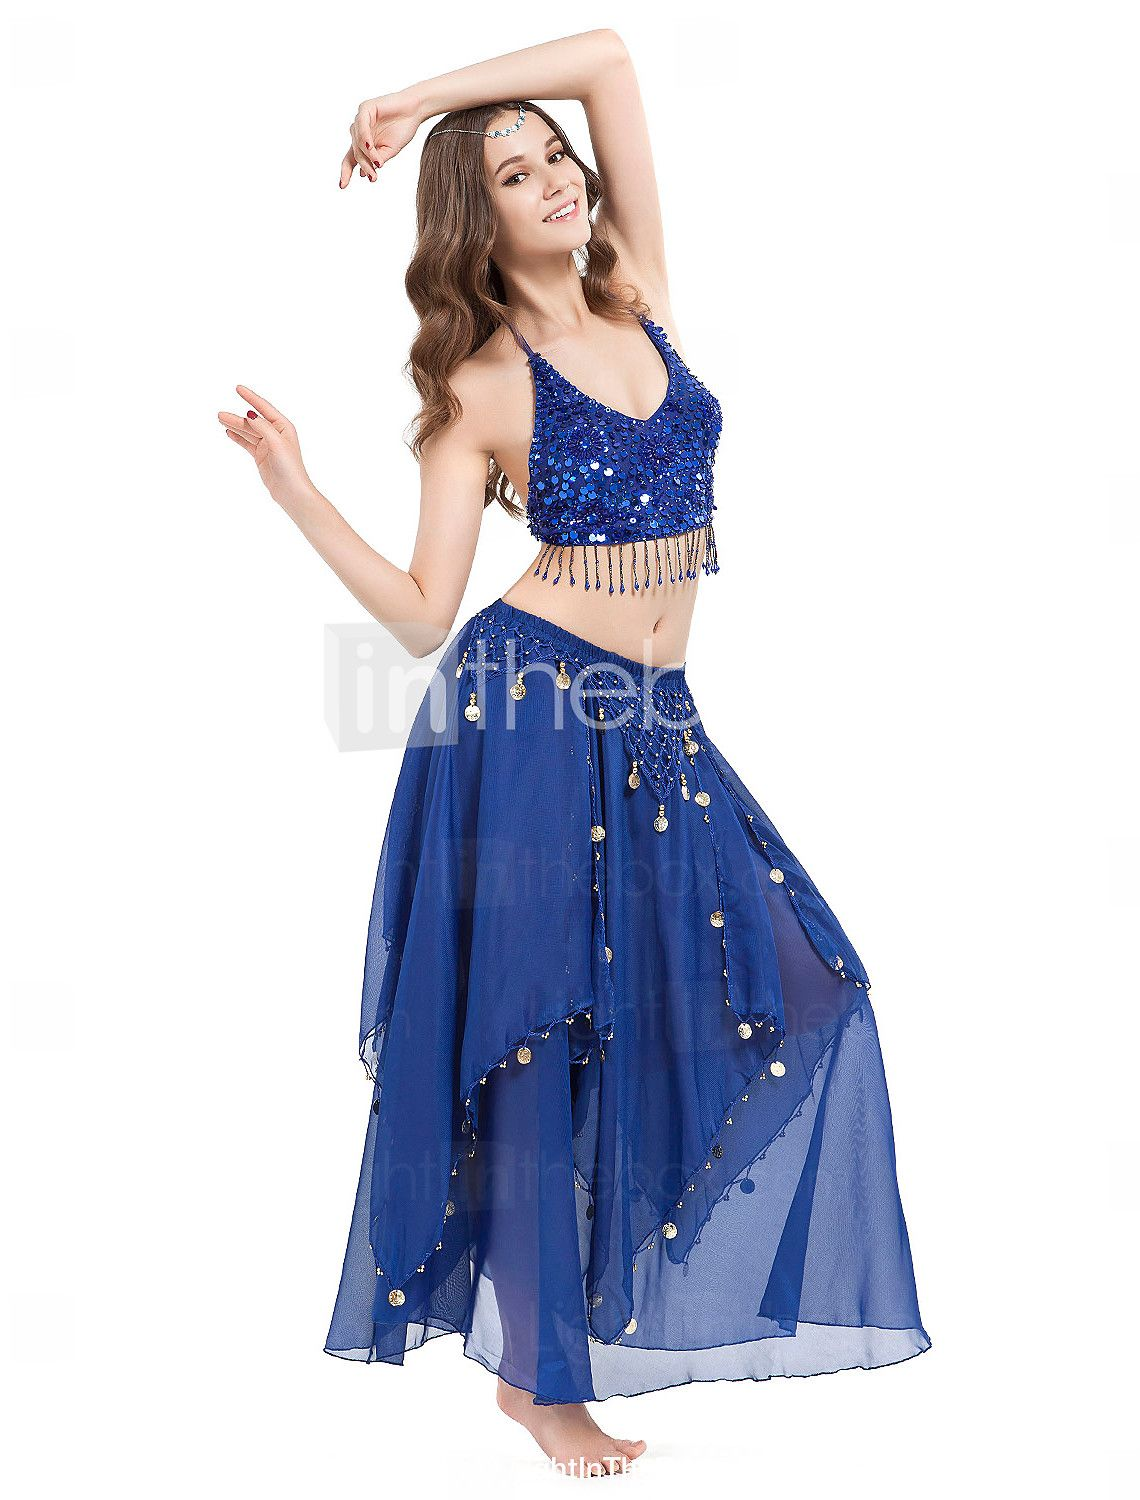 Women Dance Wear Chiffon With Coins Performance Belly Dance Skirt More Colors - AUD $ 20.54